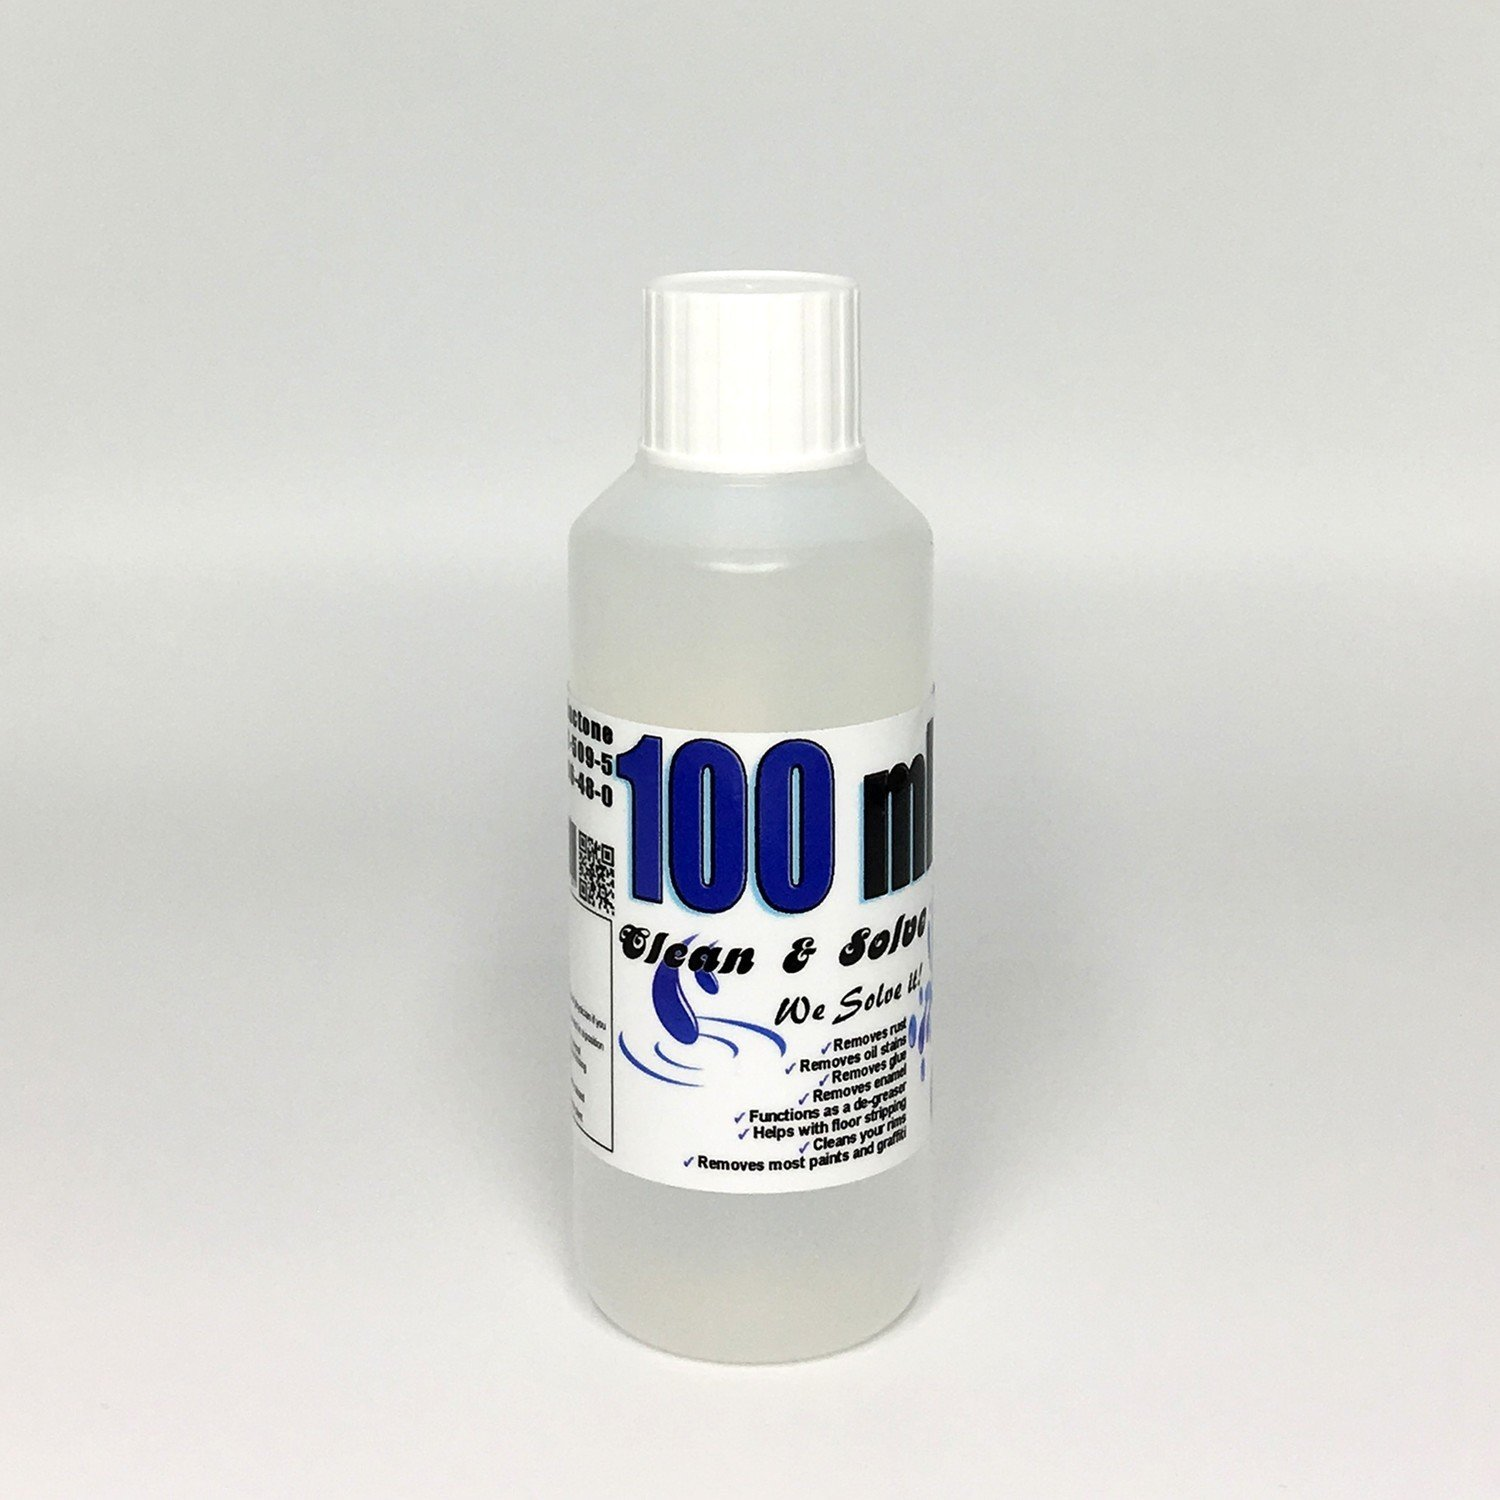 Multi Remover 100 ml Technical Grade + with every order 1x 500 ml technical grade Free!